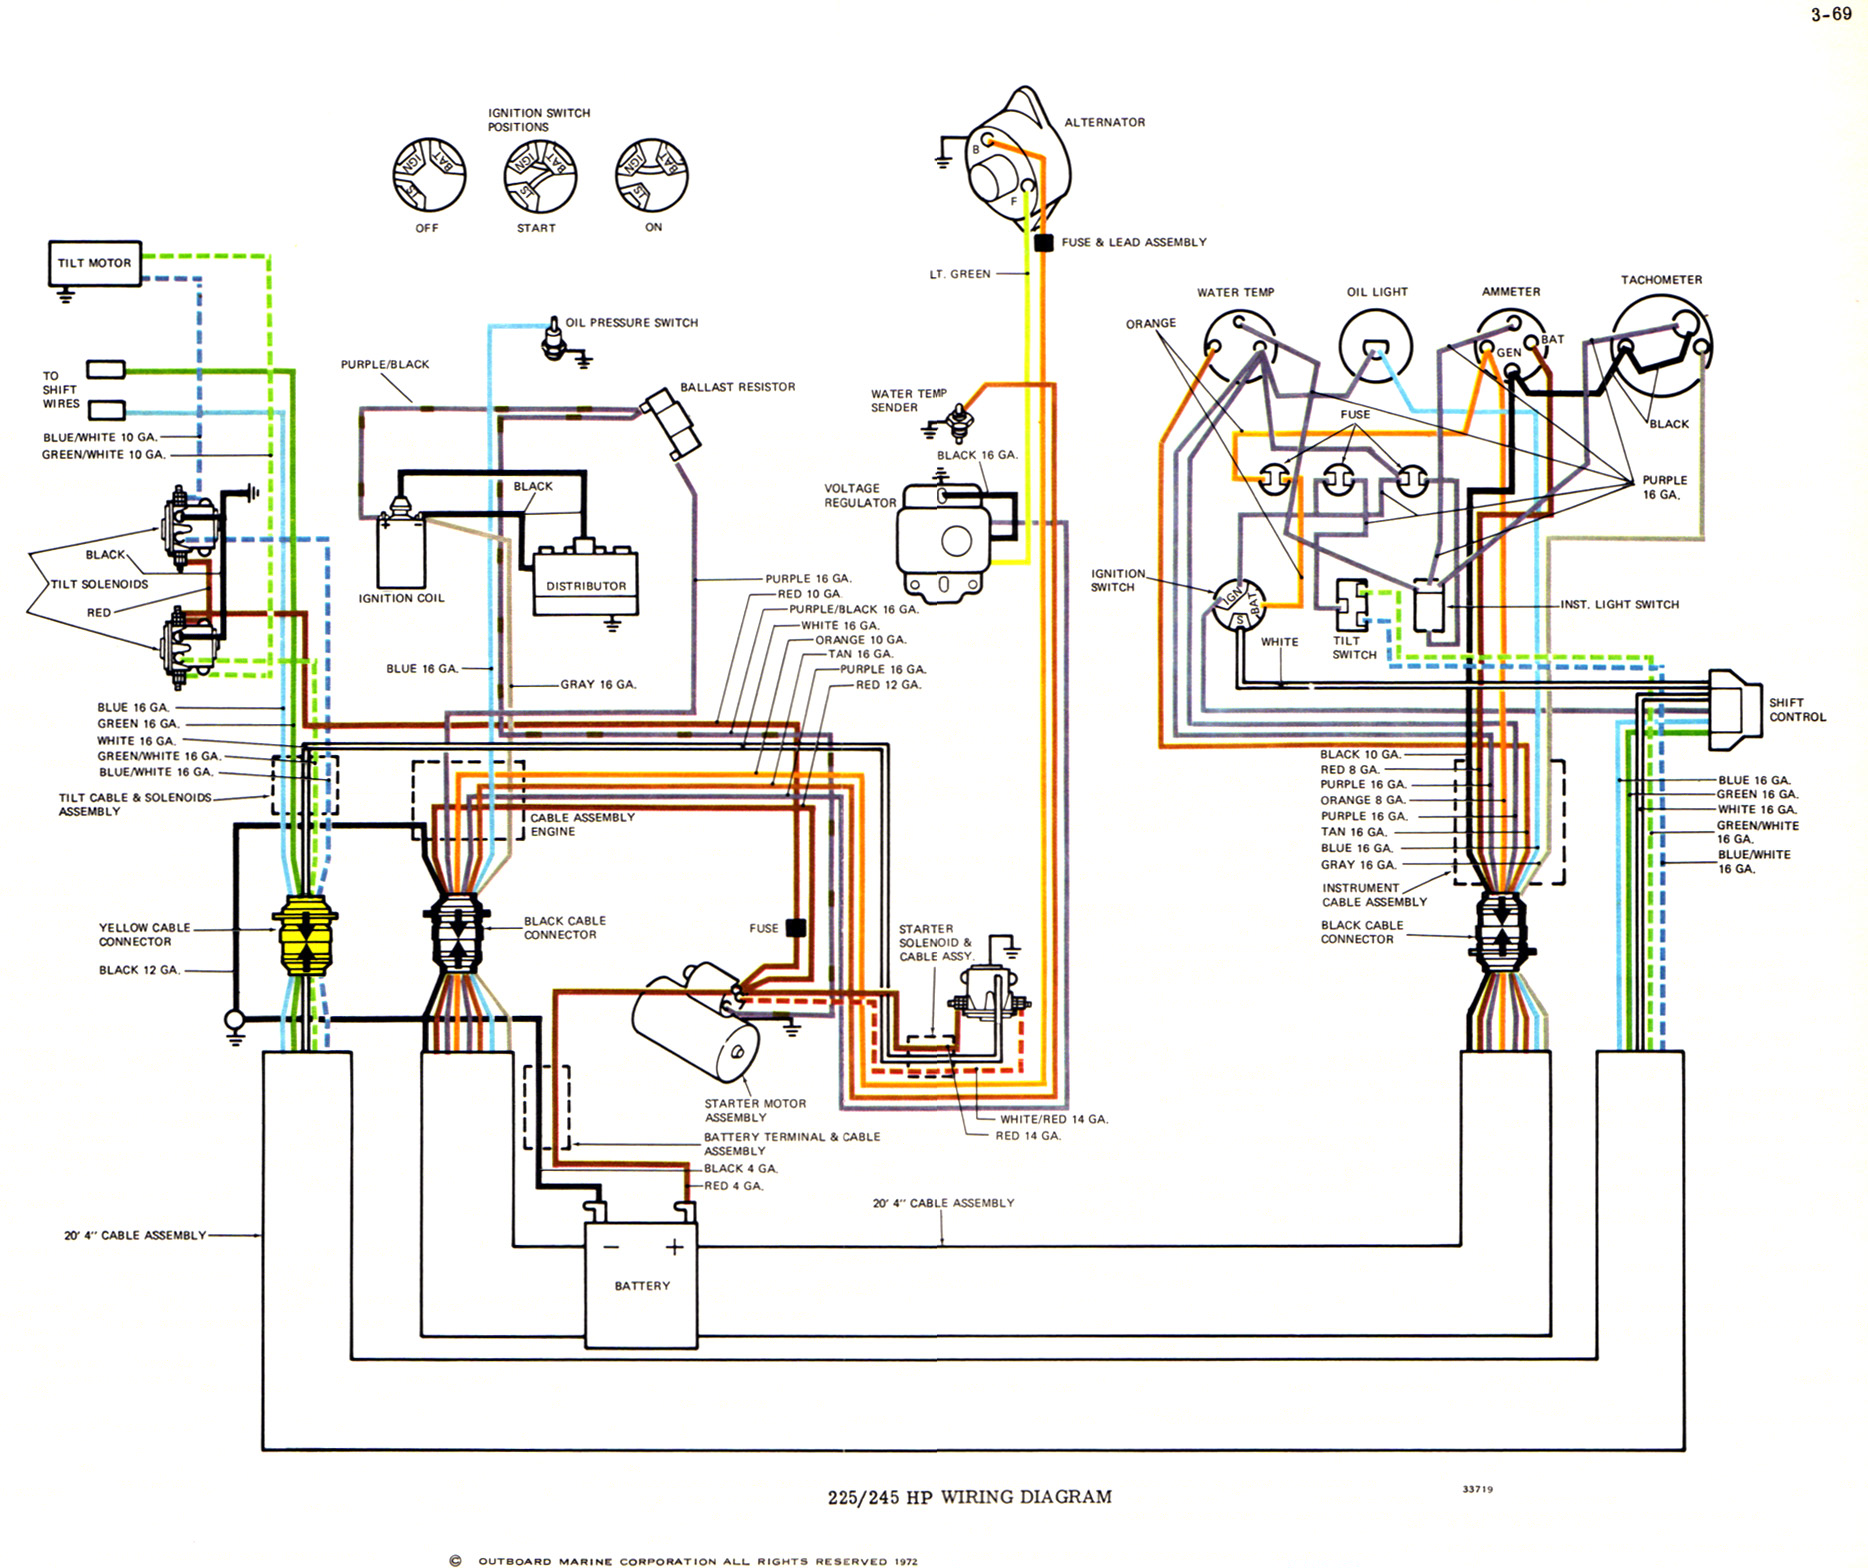 omc wiring diagrams simple wiring schema 12 volt switch wiring diagram omc trolling motor wiring diagram free picture [ 1868 x 1568 Pixel ]